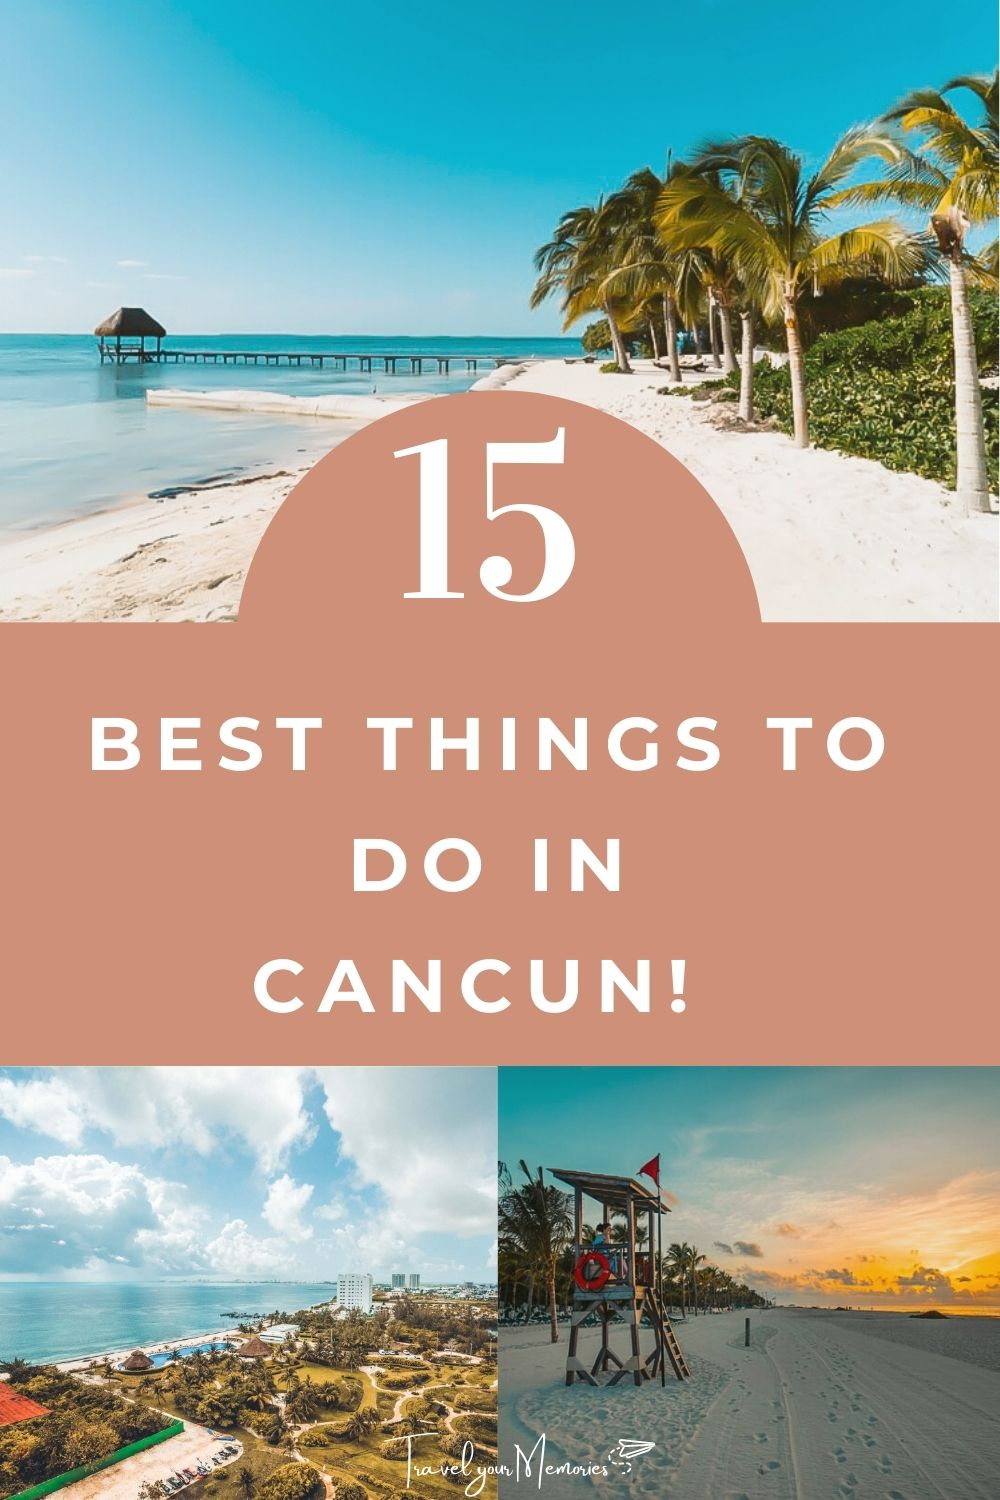 15 Best things to do in Cancun